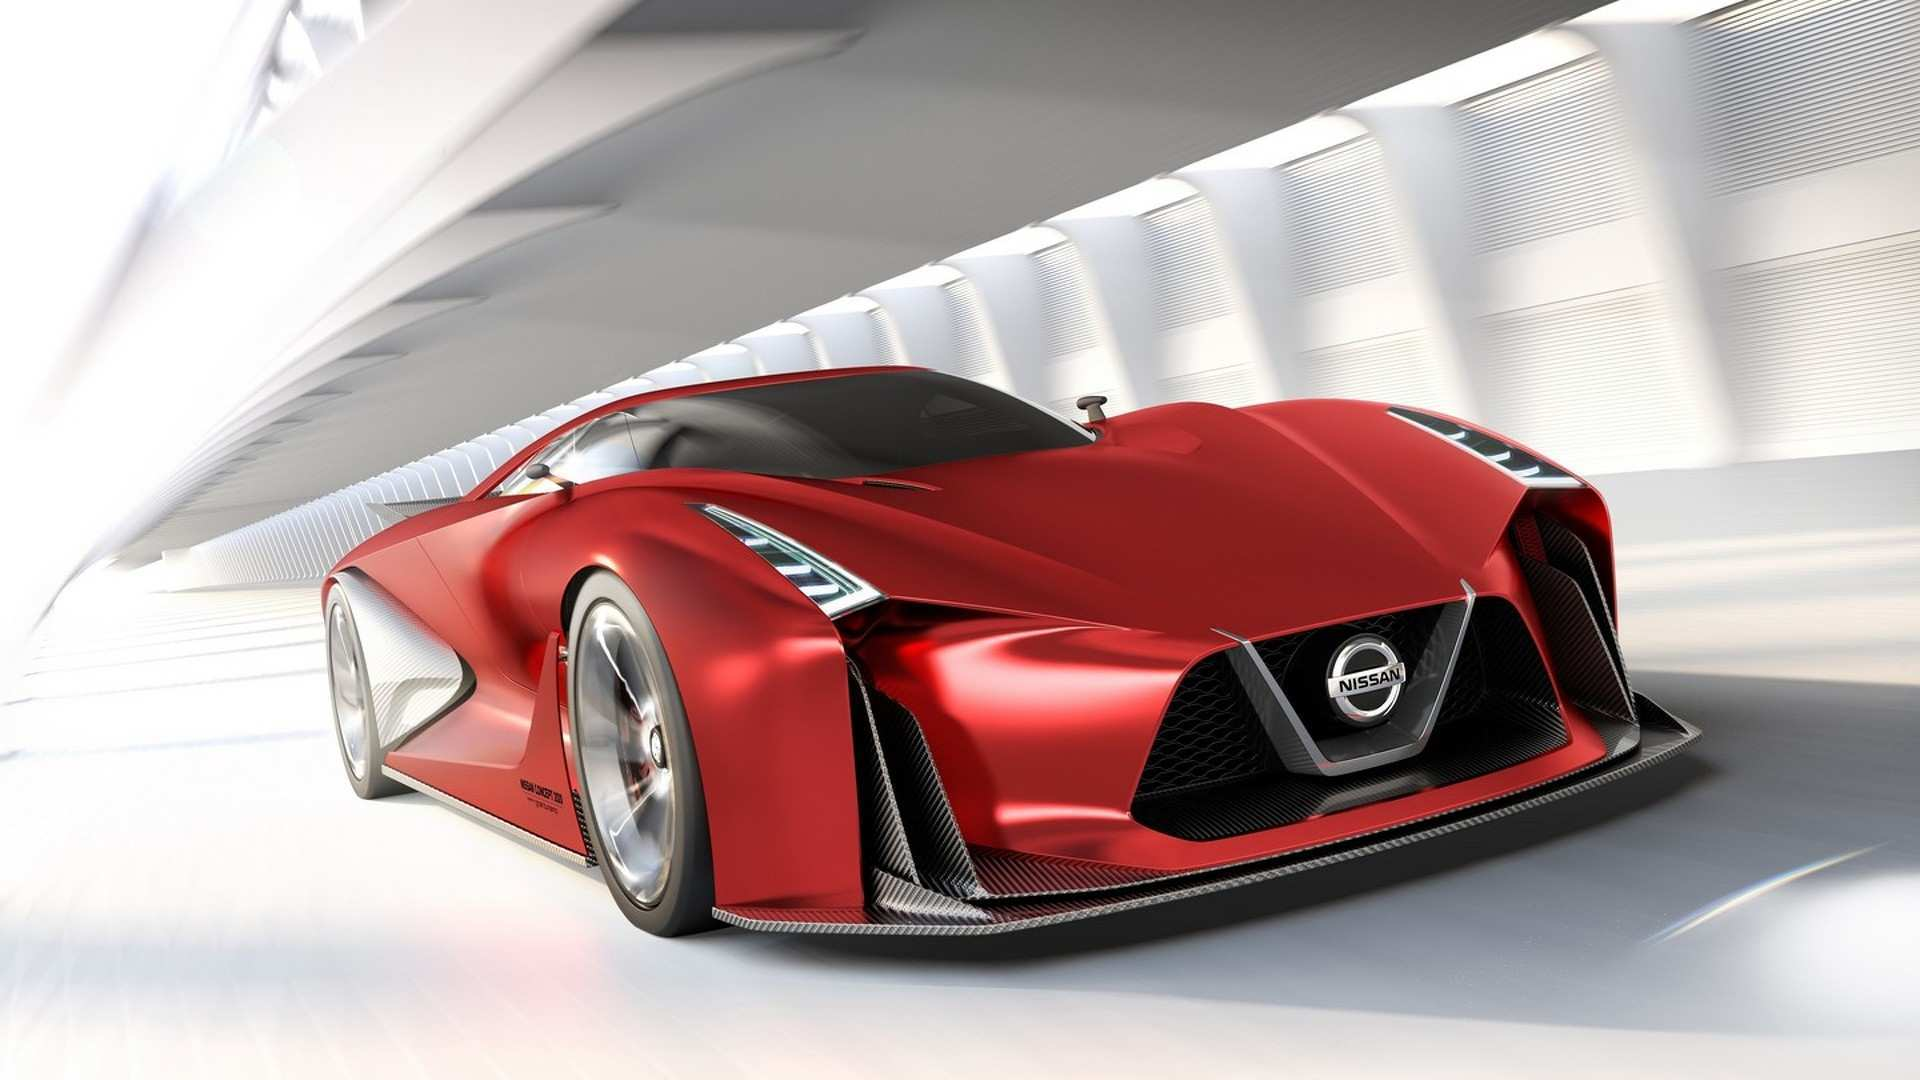 92 New Nissan 2020 Vision Gt Specs for Nissan 2020 Vision Gt